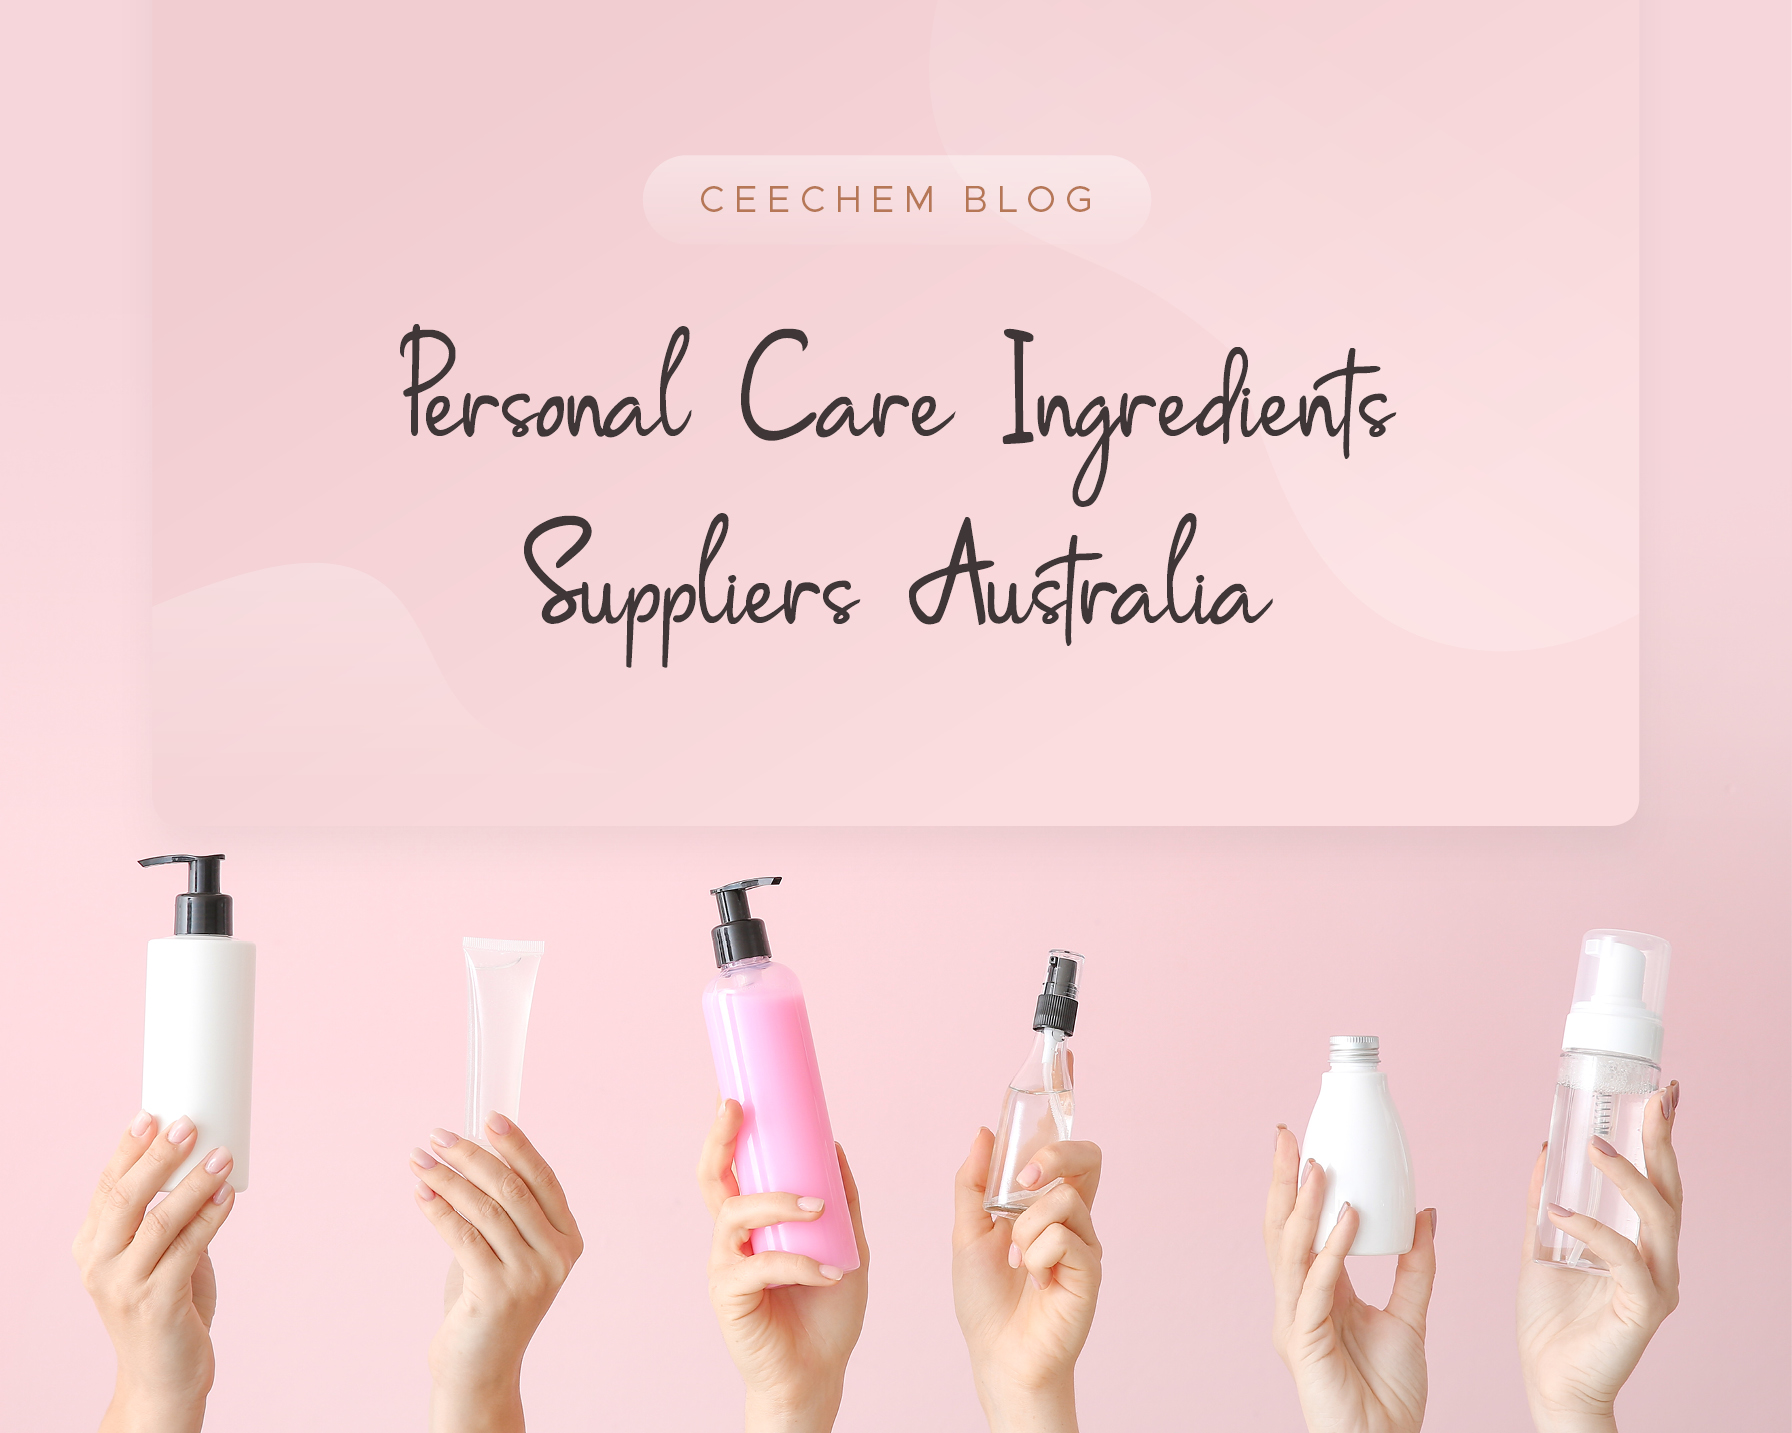 Personal Care Ingredients Suppliers Australia